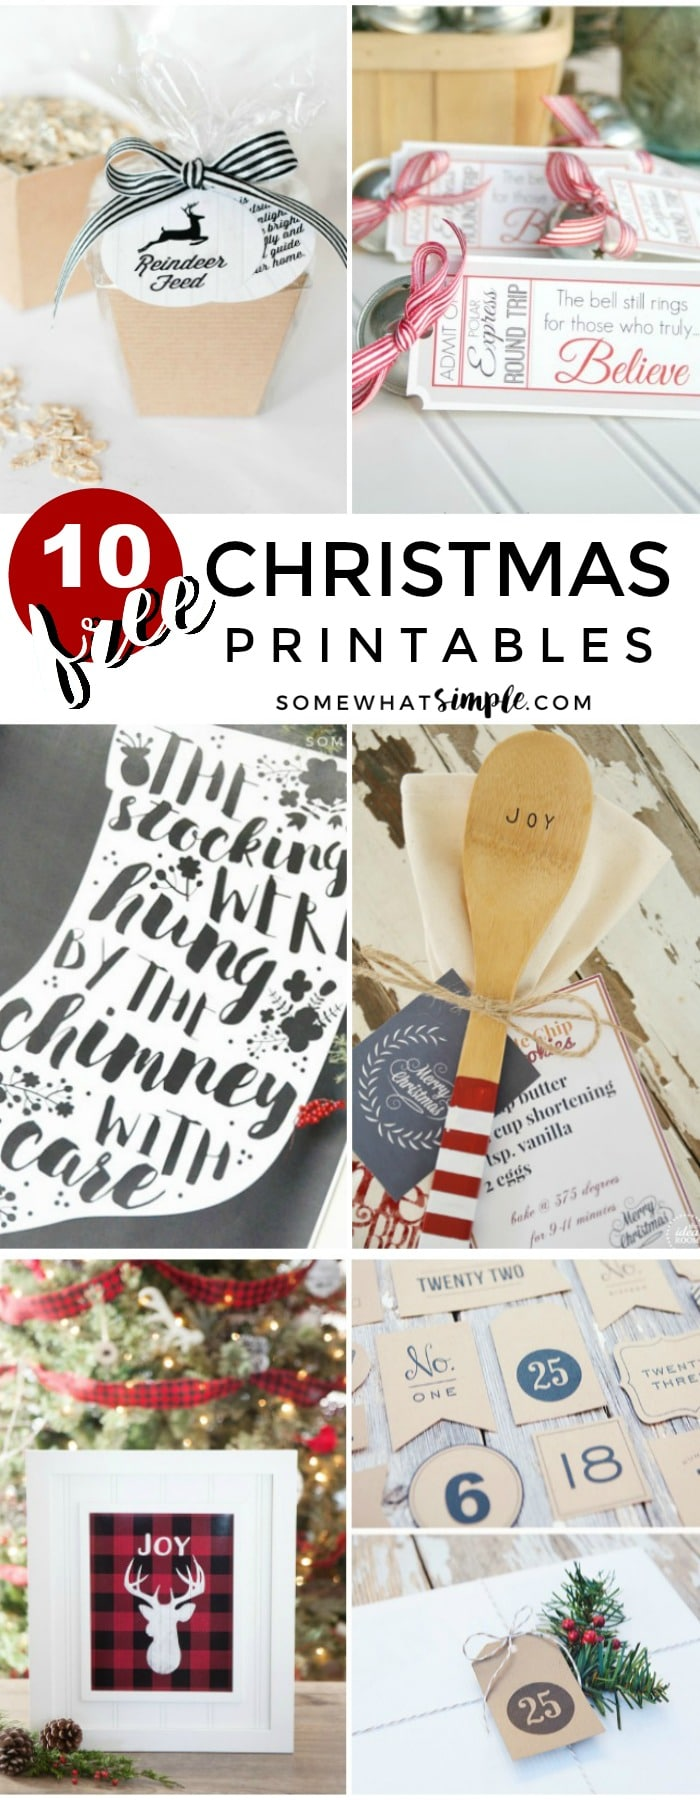 Keep your Christmas preparations simple and budget-friendly with 10 of our favorite FREE Christmas Printables! via @somewhatsimple